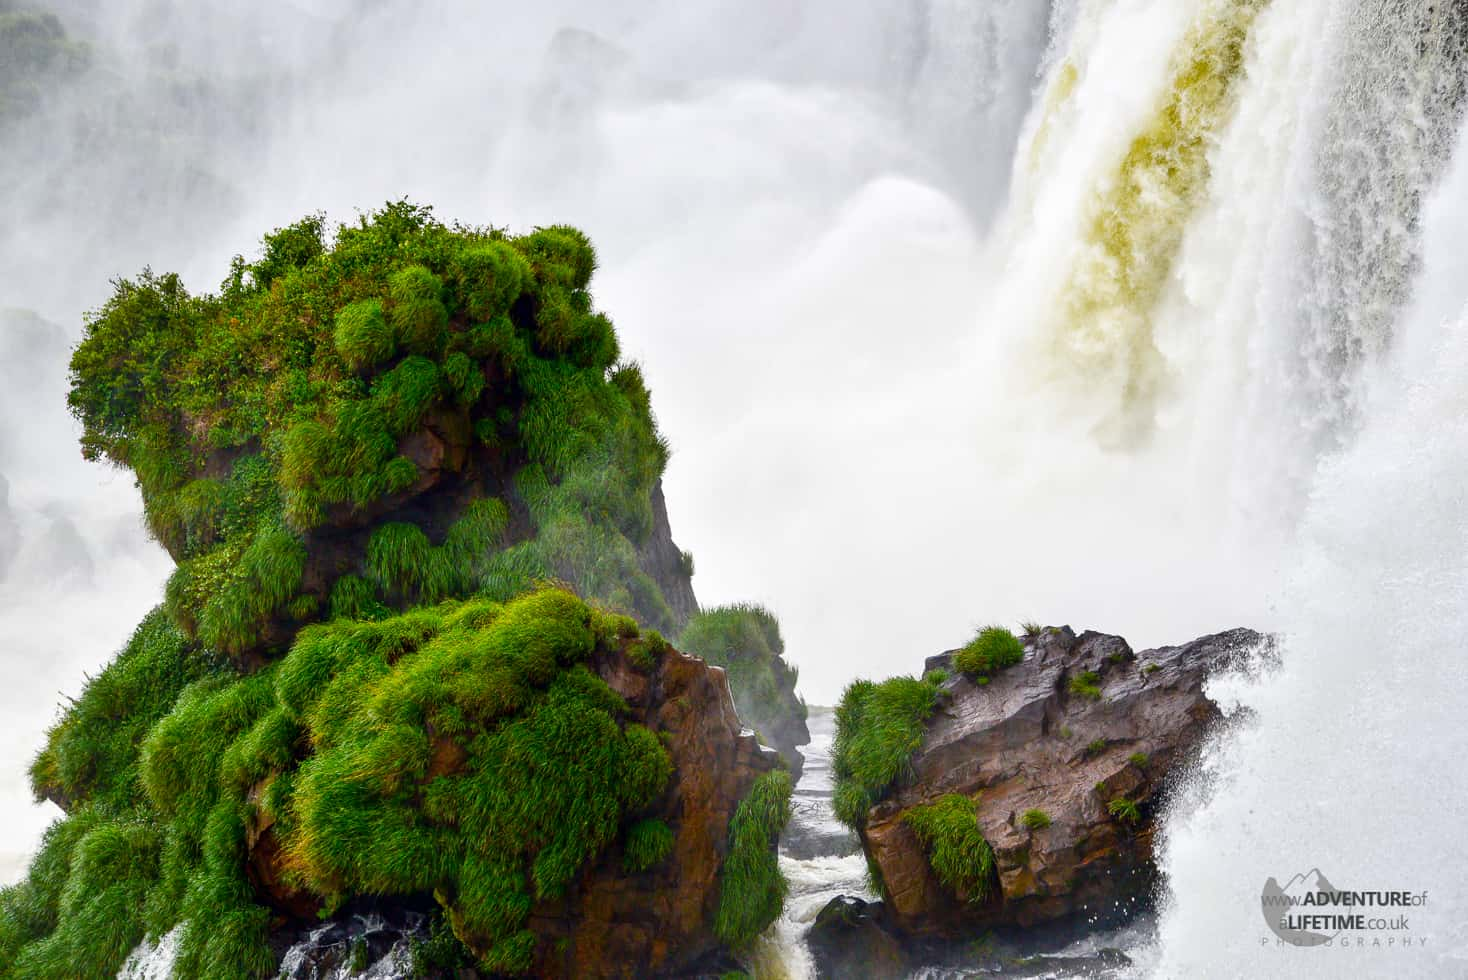 Island surrounded by the raging waters of Iguassu Falls